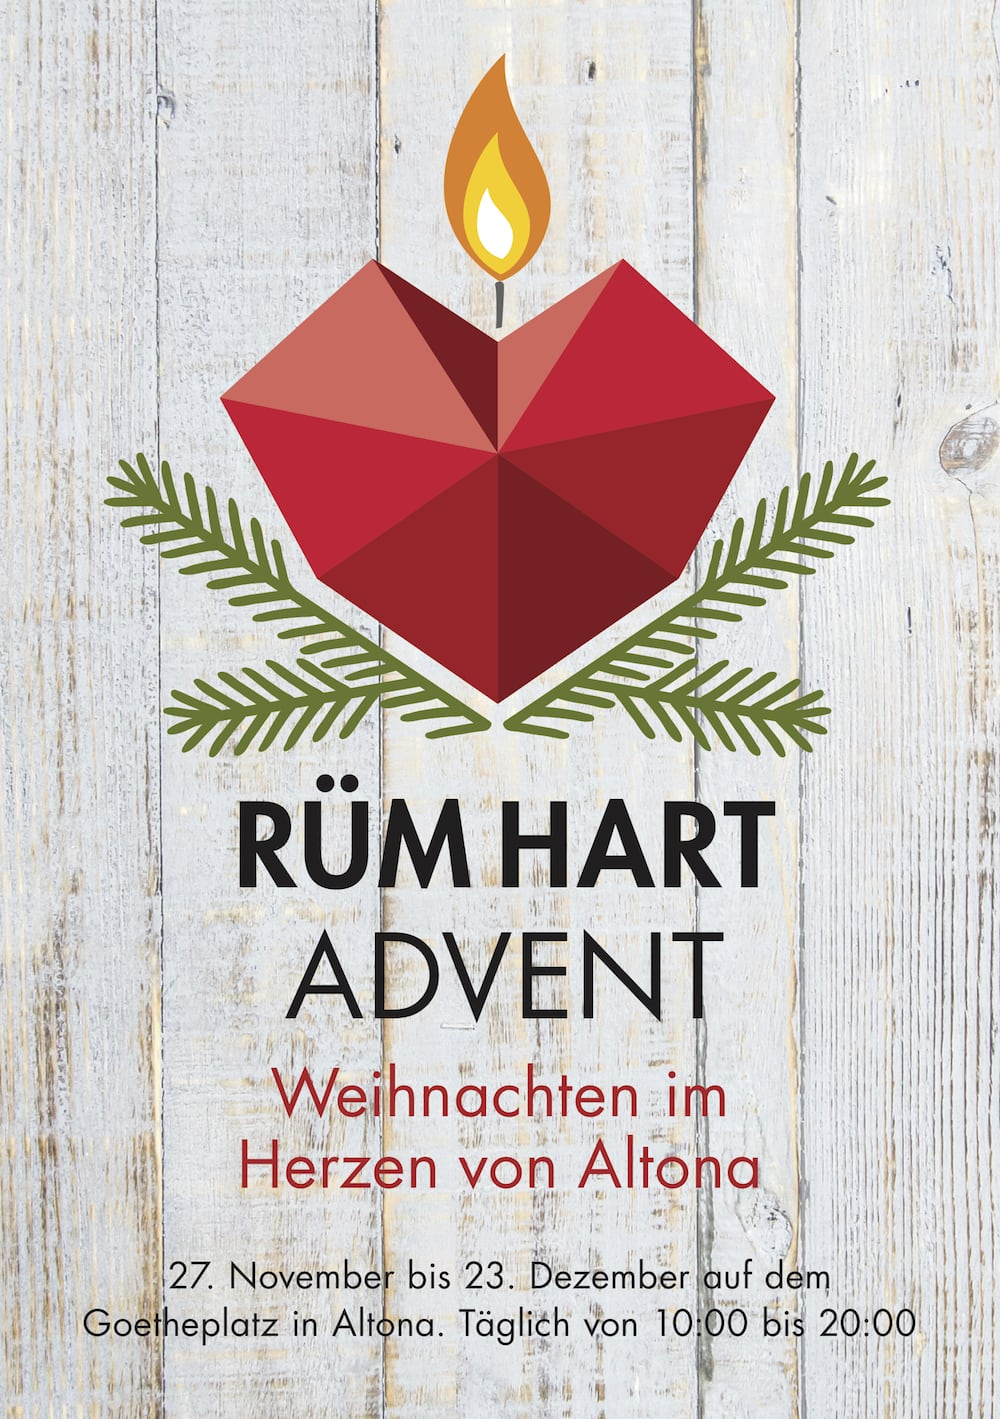 r m hart advent weihnachtsmarkt in altona unser altona. Black Bedroom Furniture Sets. Home Design Ideas